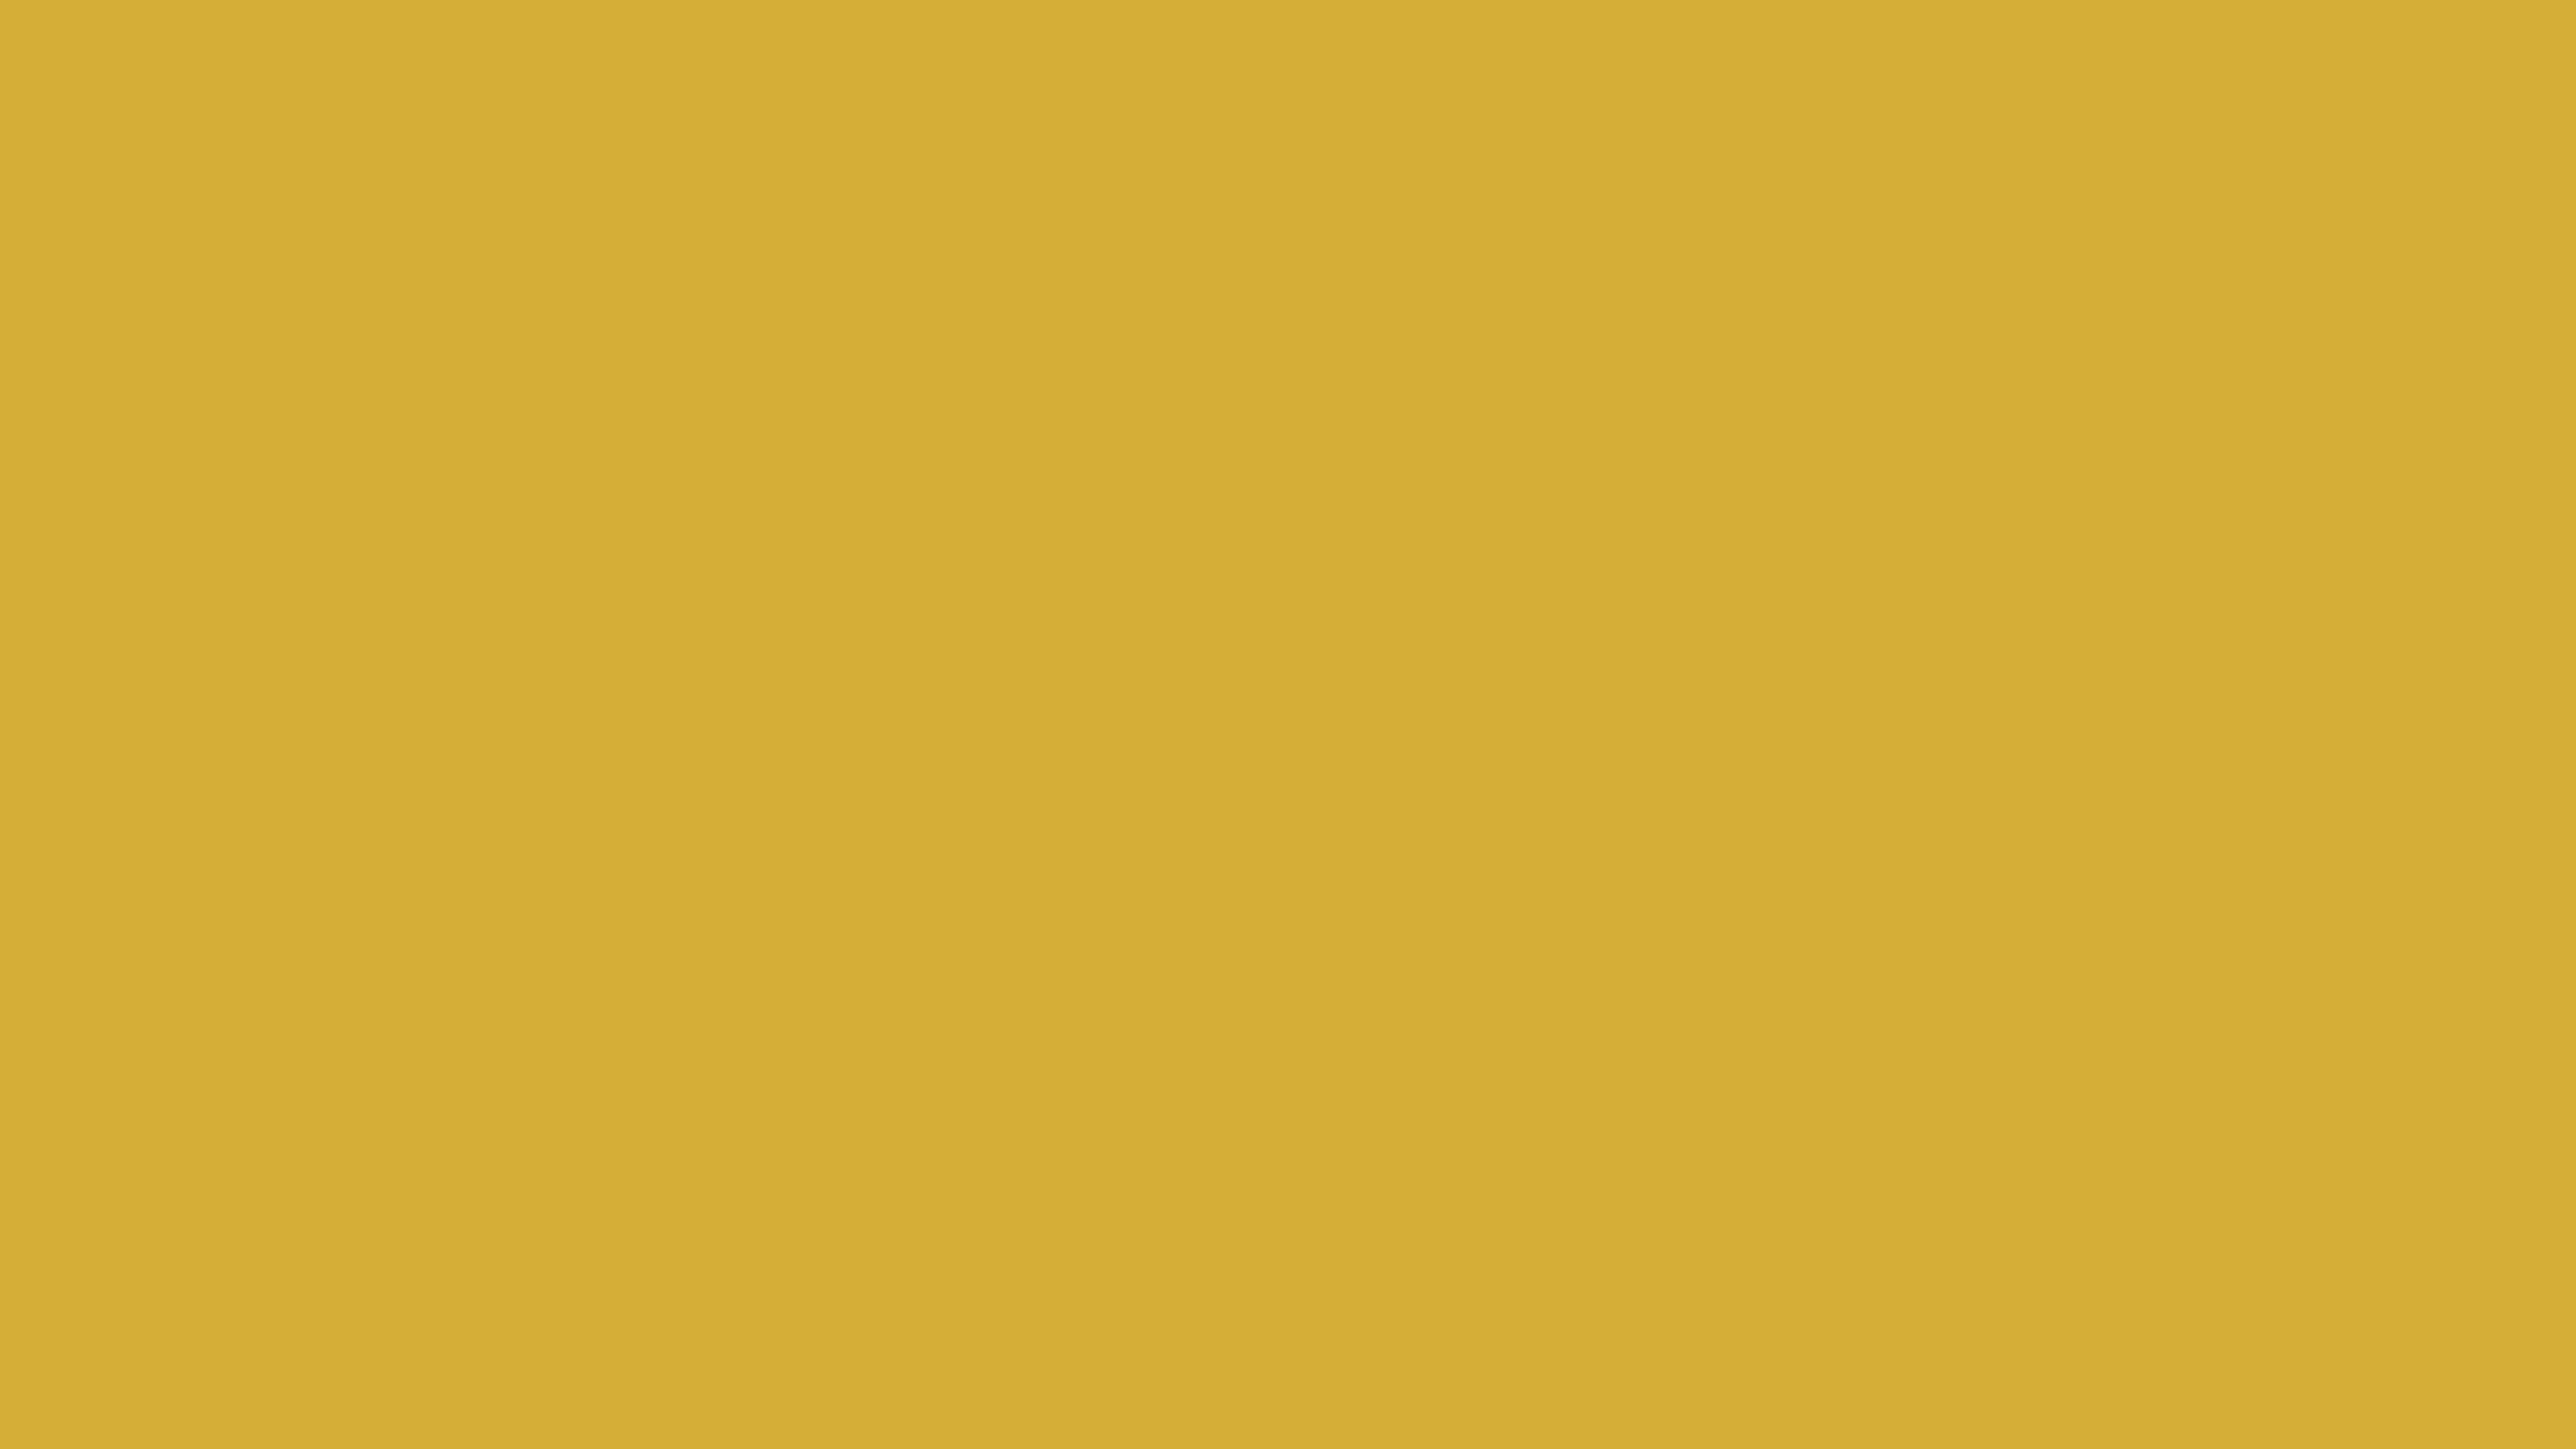 3840x2160 Gold Metallic Solid Color Background